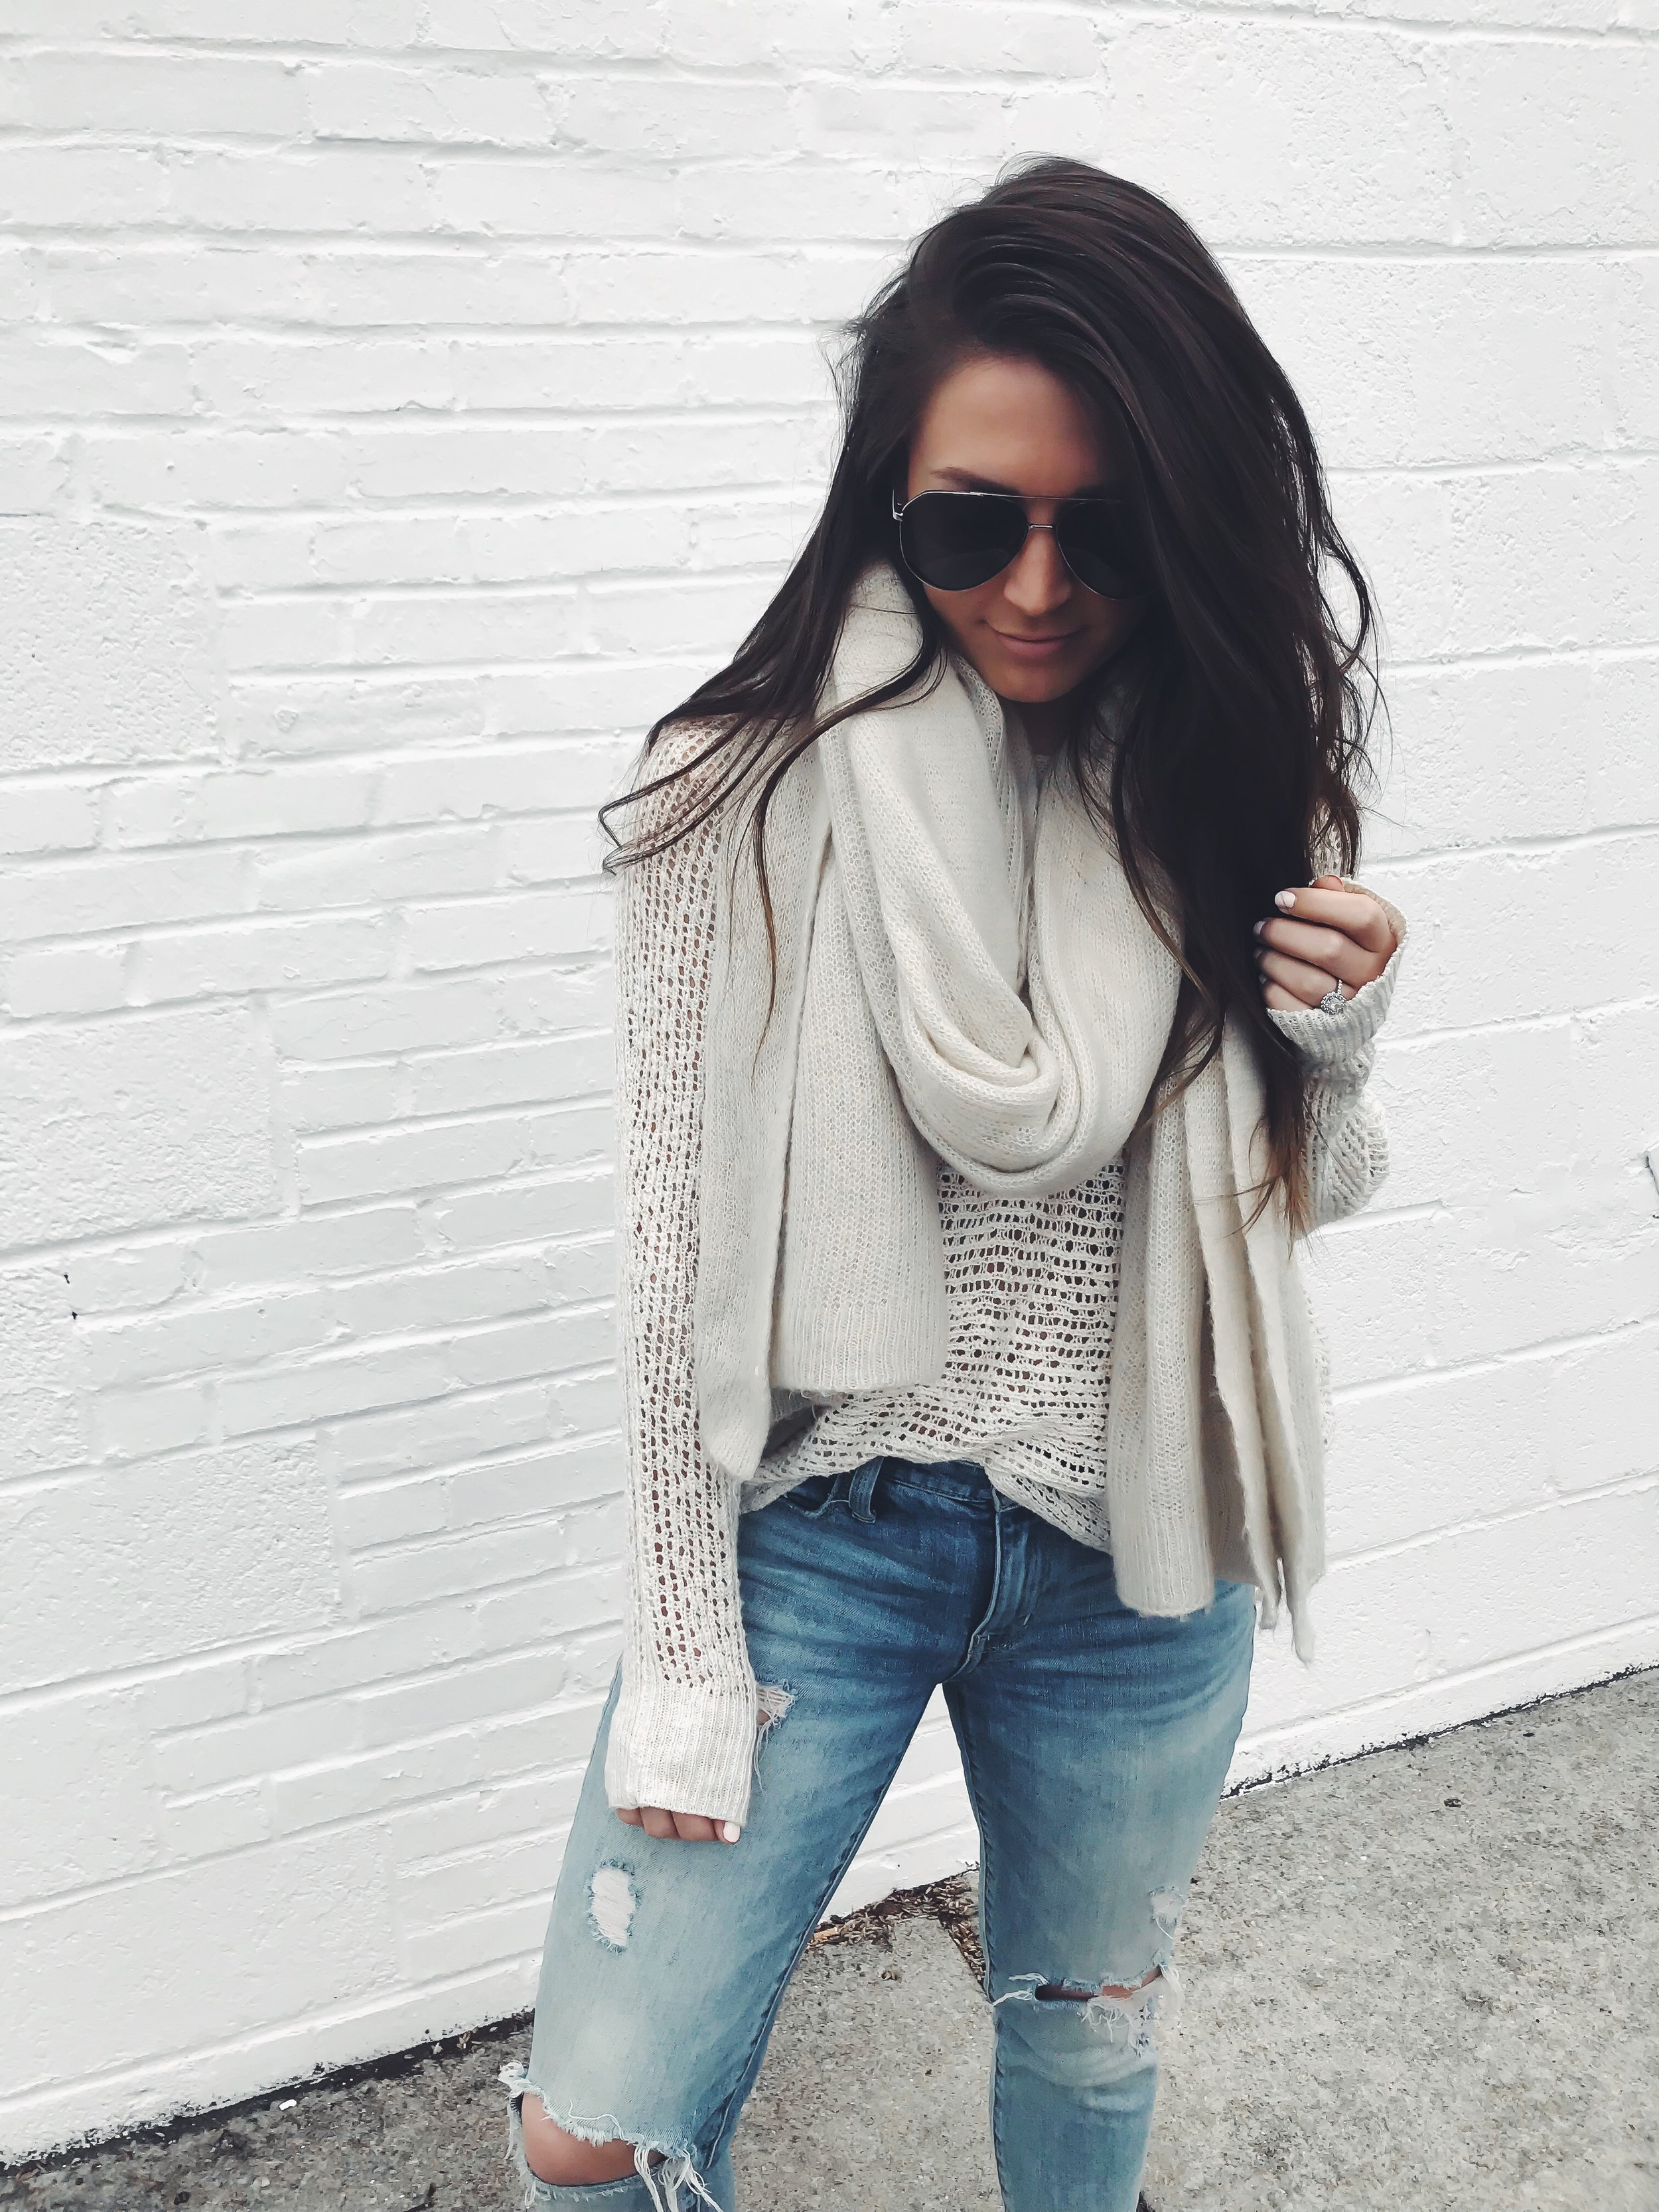 Instagram Round Up + Current Sales | Pine Barren Beauty | outfit of the day, outfit details, spring outfit, spring transition outfit, distressed denim, light weight sweater